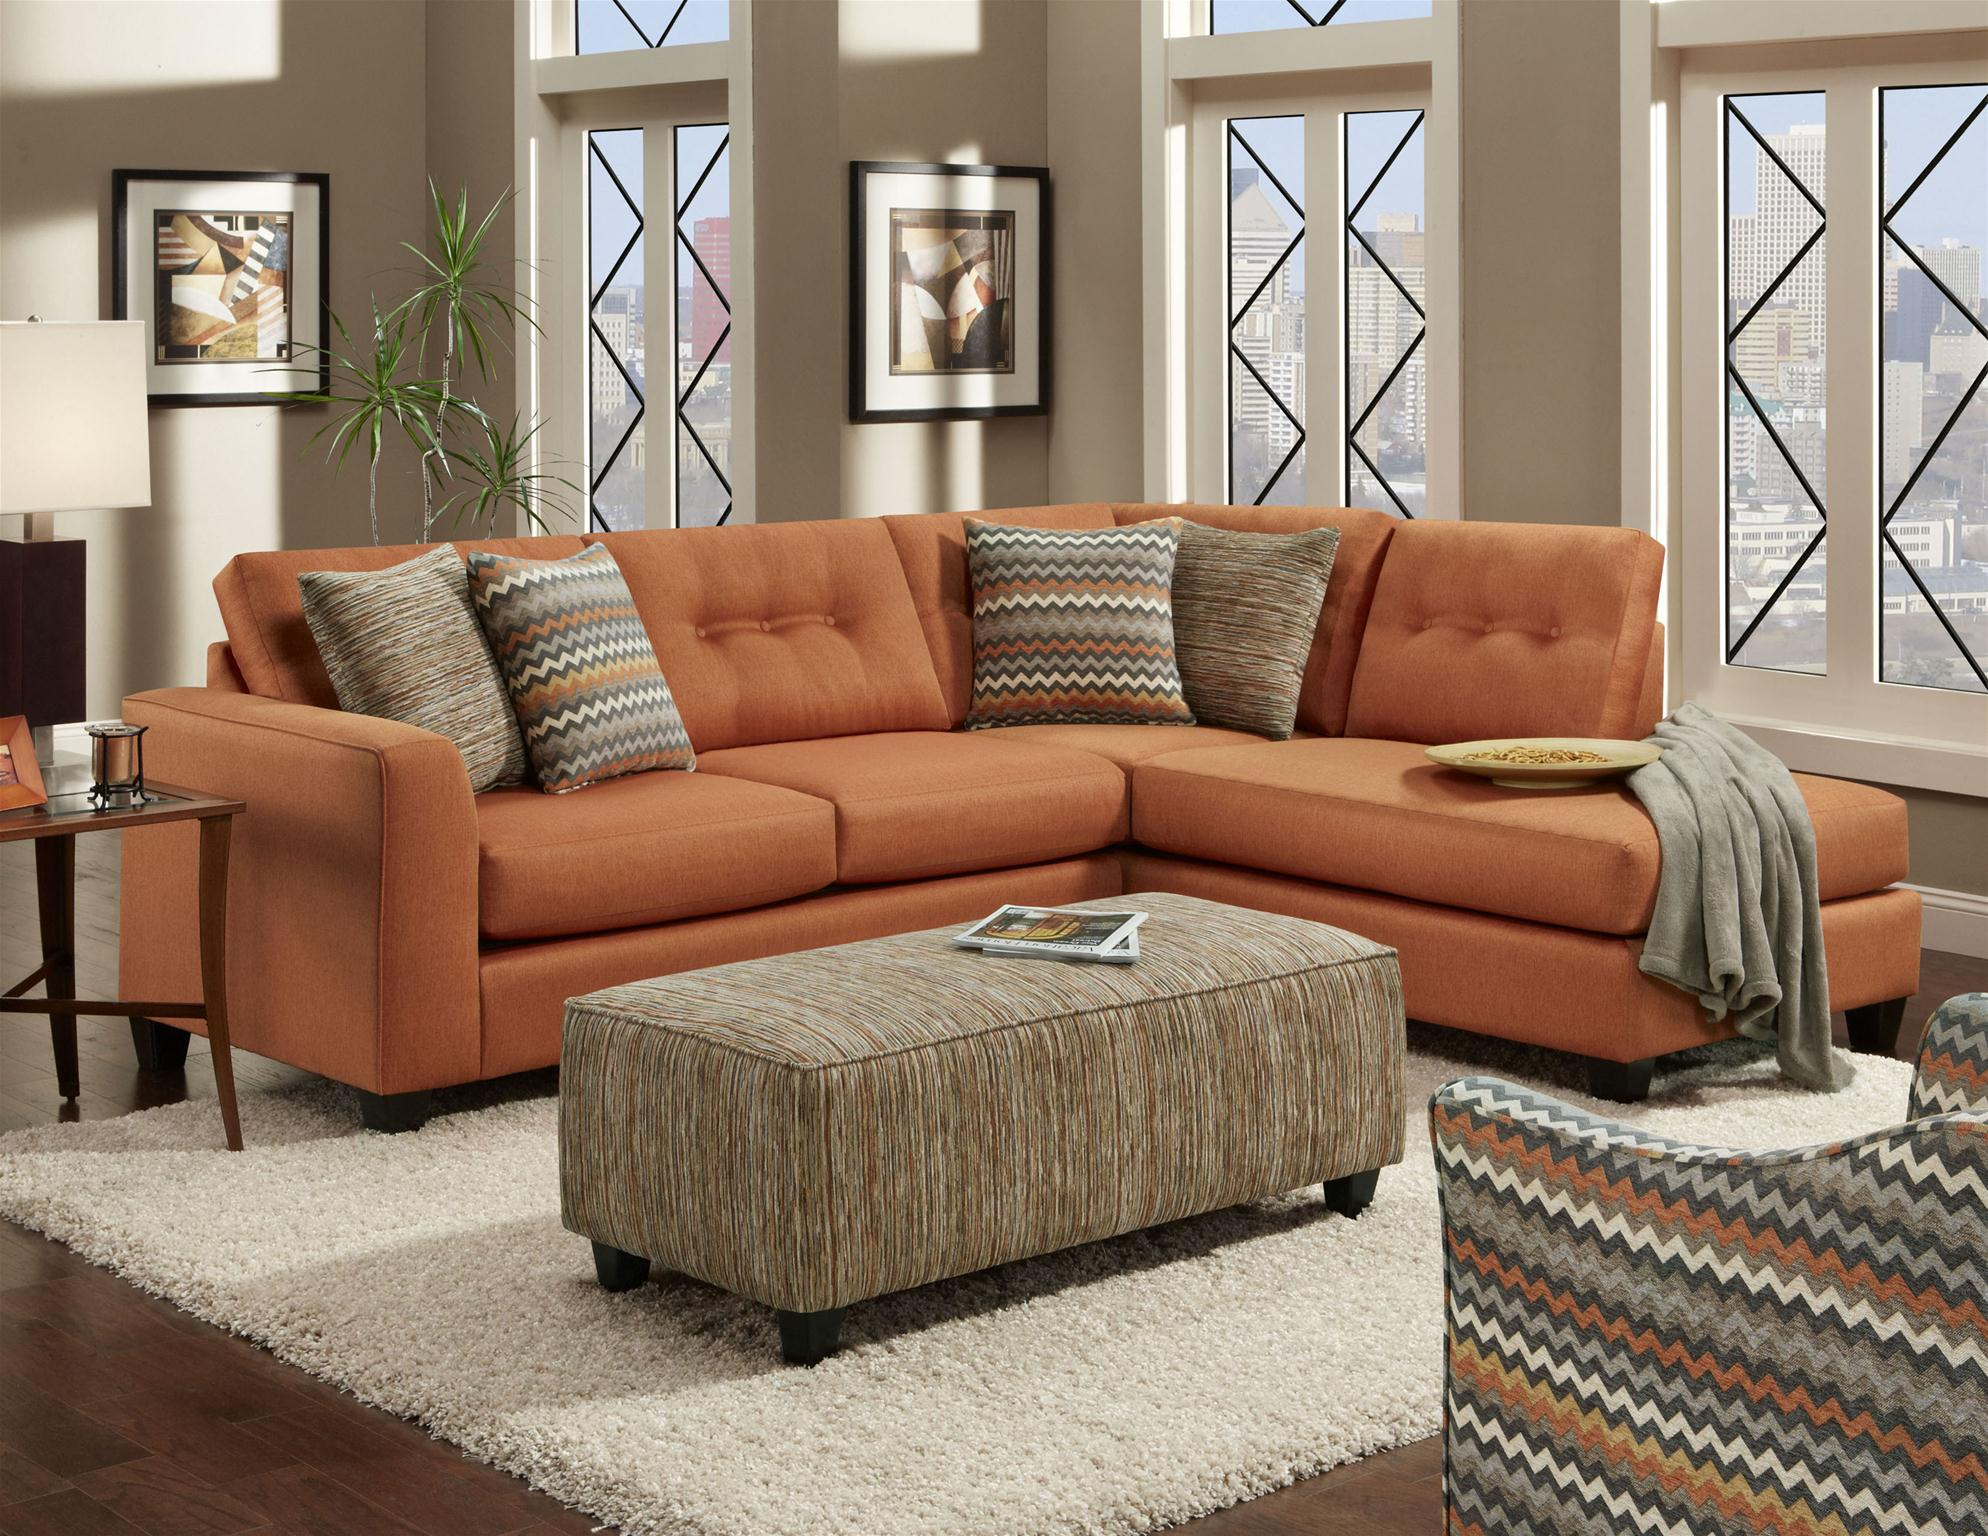 Sectional sofas with chaise Enjoy ultimate comfort functionality and beauty